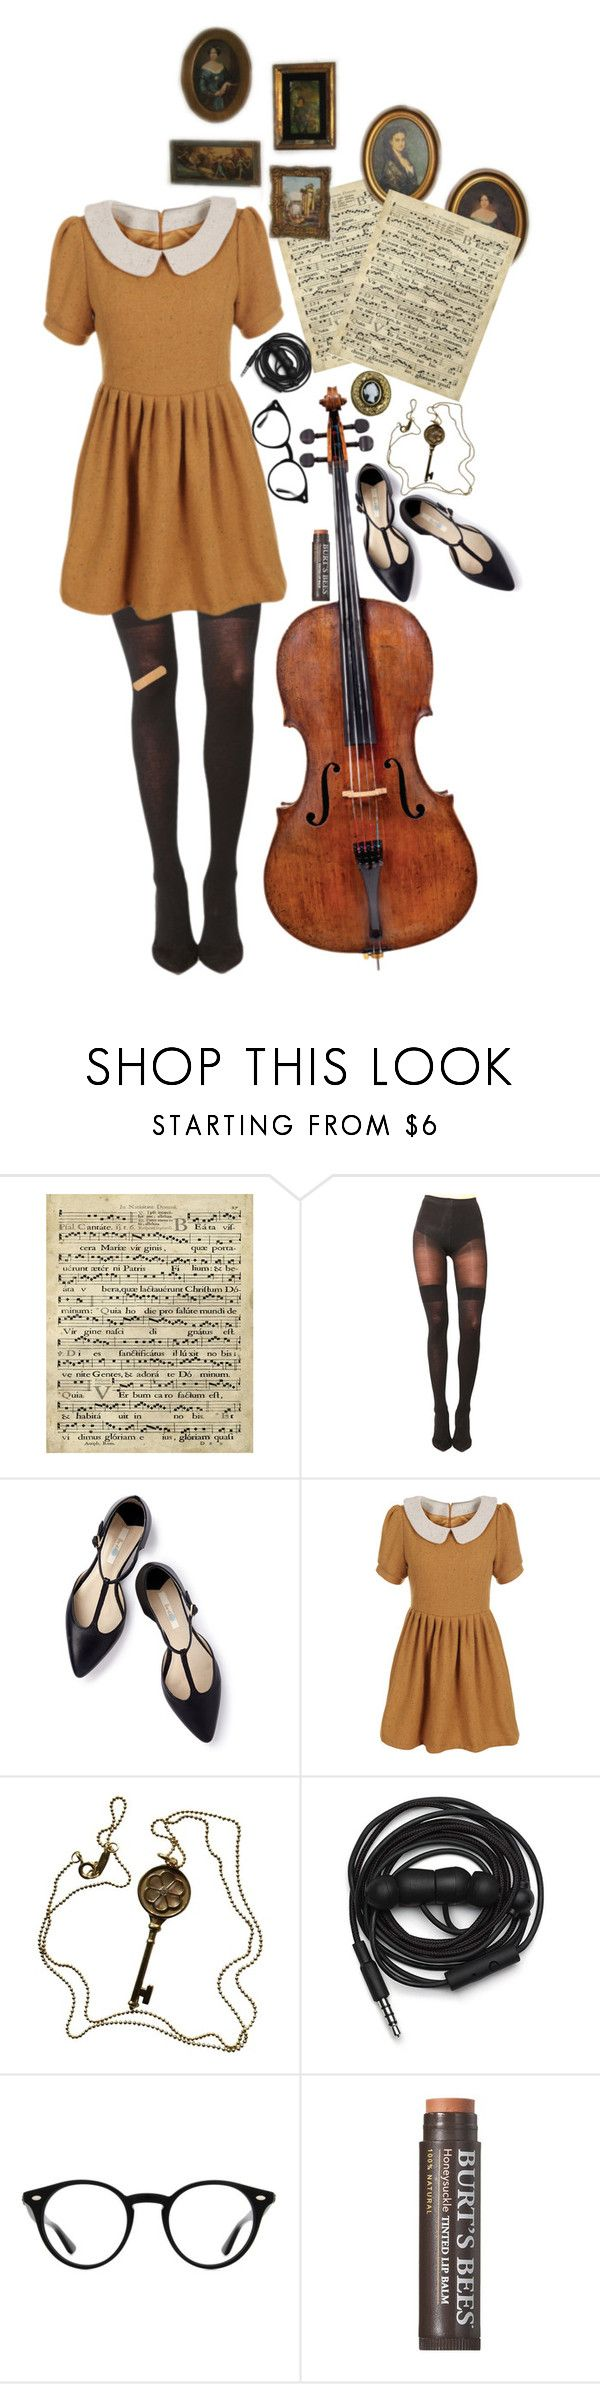 """""""play that funky music"""" by pixiekid ❤ liked on Polyvore featuring Art Classics, Pretty Polly, Boden, Tiffany & Co., Urbanears, Ray-Ban and Burt's Bees"""